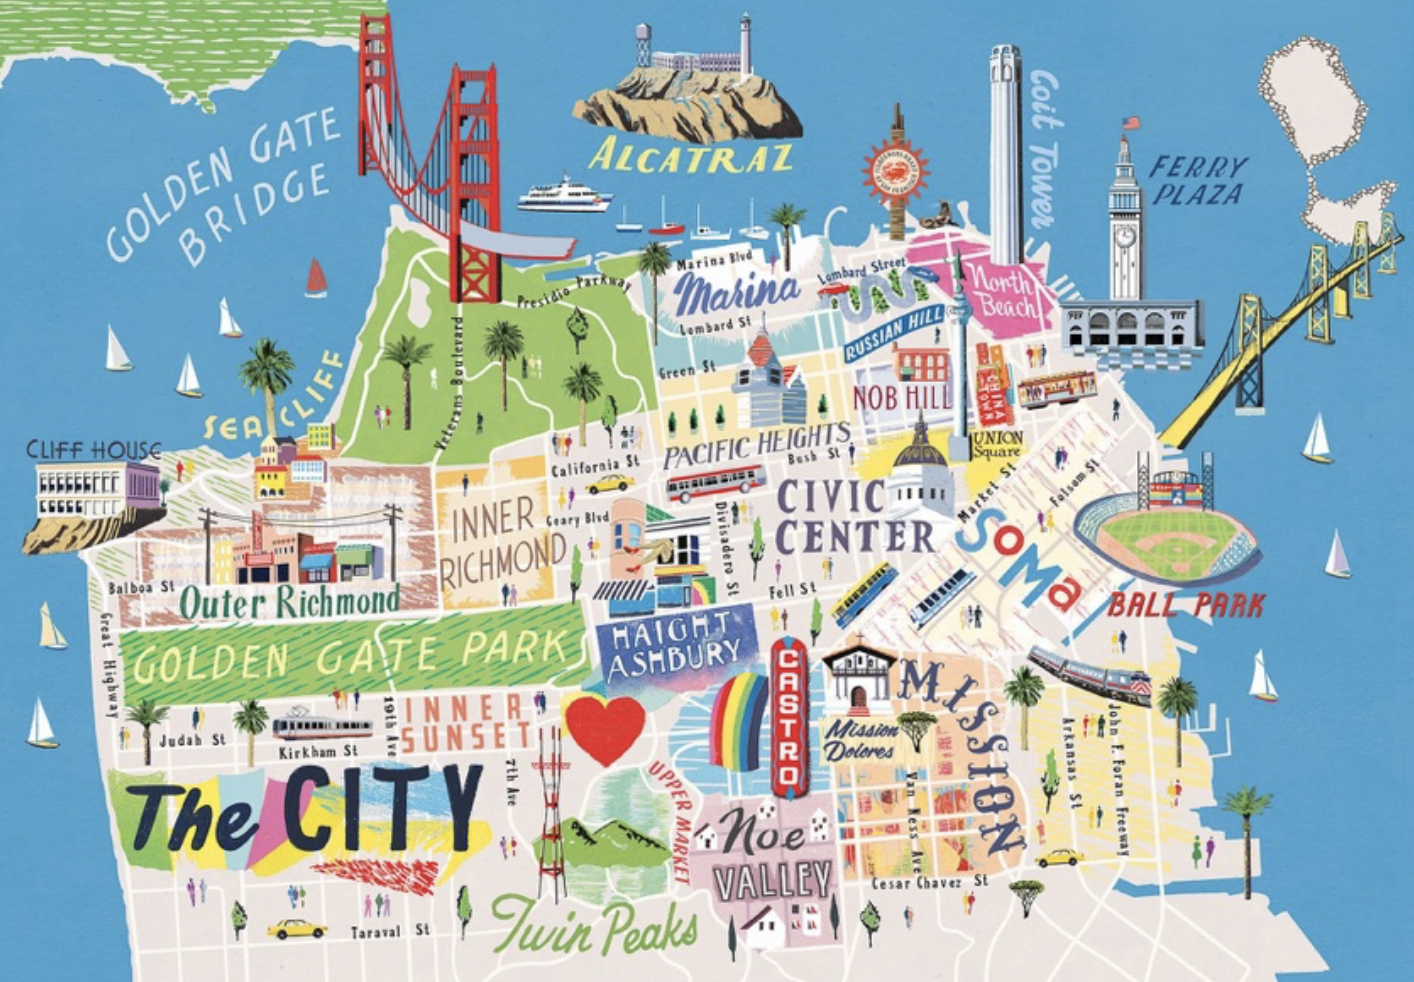 TRAVEL GUIDE: SEE SAN FRANCISCO IN LESS THAN 24 HOURS ... on northern ca map, california map, las vegas map, tokyo map, san diego, sausalito map, new orleans map, boston map, los angeles map, golden gate park map, united states map, london map, berkeley map, usa map, bay area map, chicago map, omaha map, detroit map, sydney australia map, dallas map, new york map, salt lake city map, kansas city map,